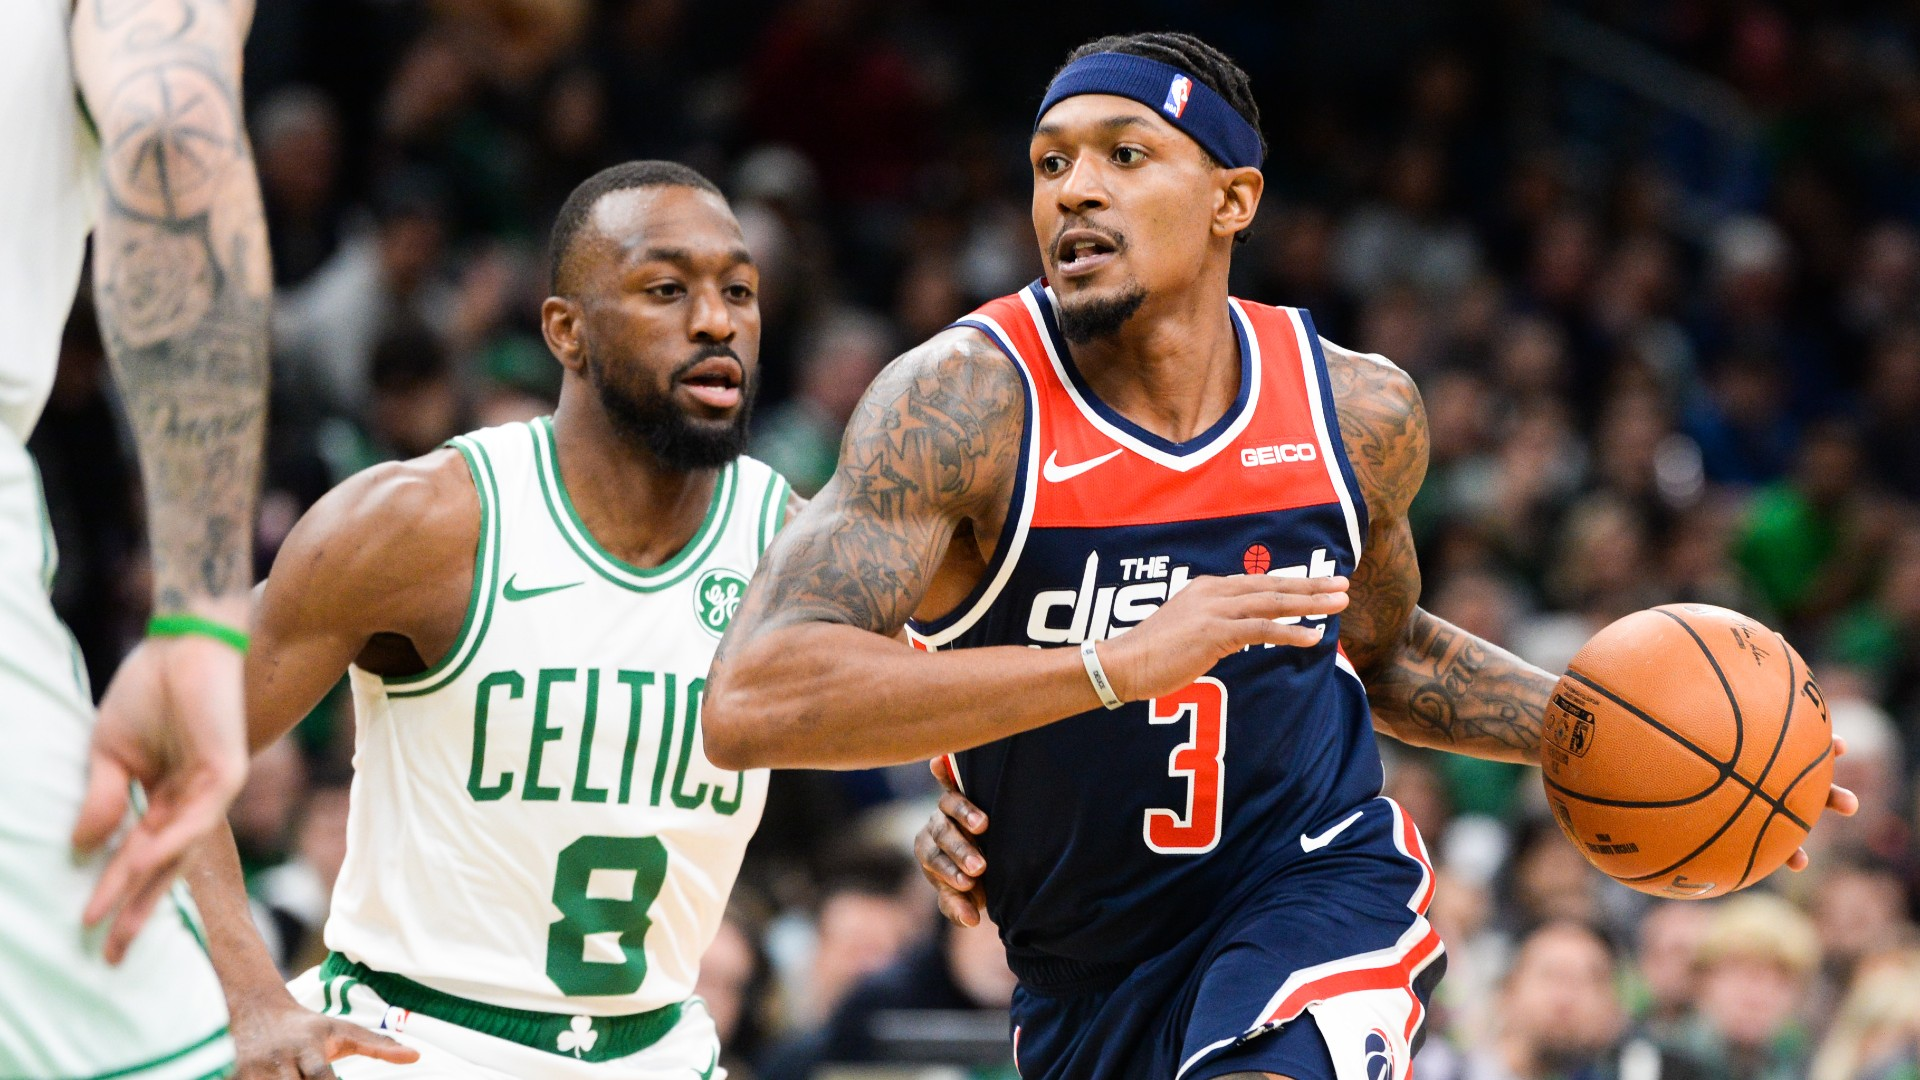 Celtics vs Wizards live score, updates, NBA play-in tournament highlights